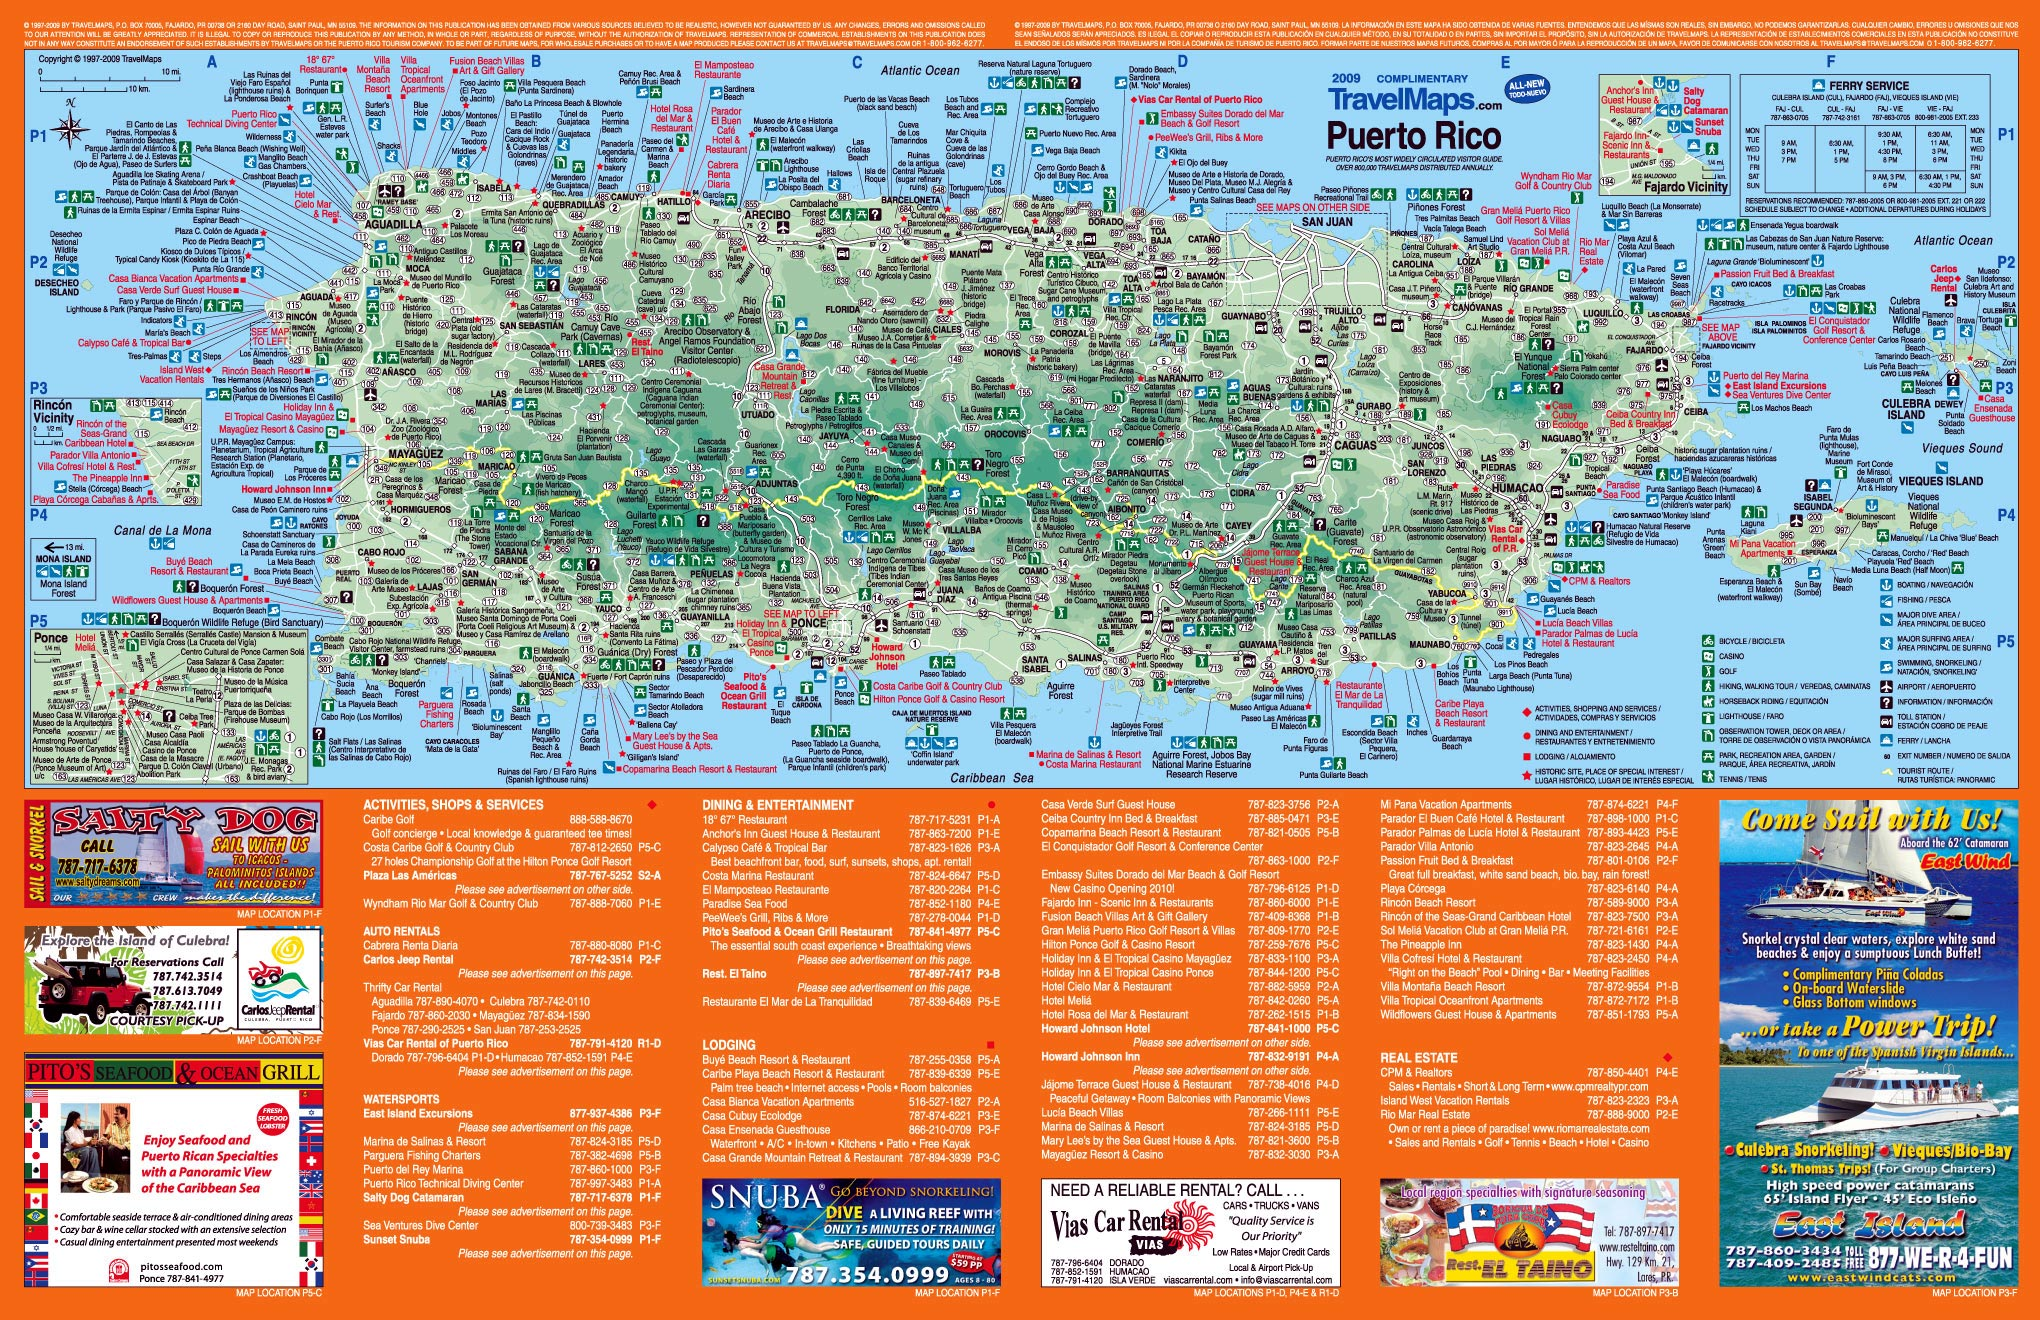 Puerto Rico Maps Printable Maps Of Puerto Rico For Download - Puerto rico maps